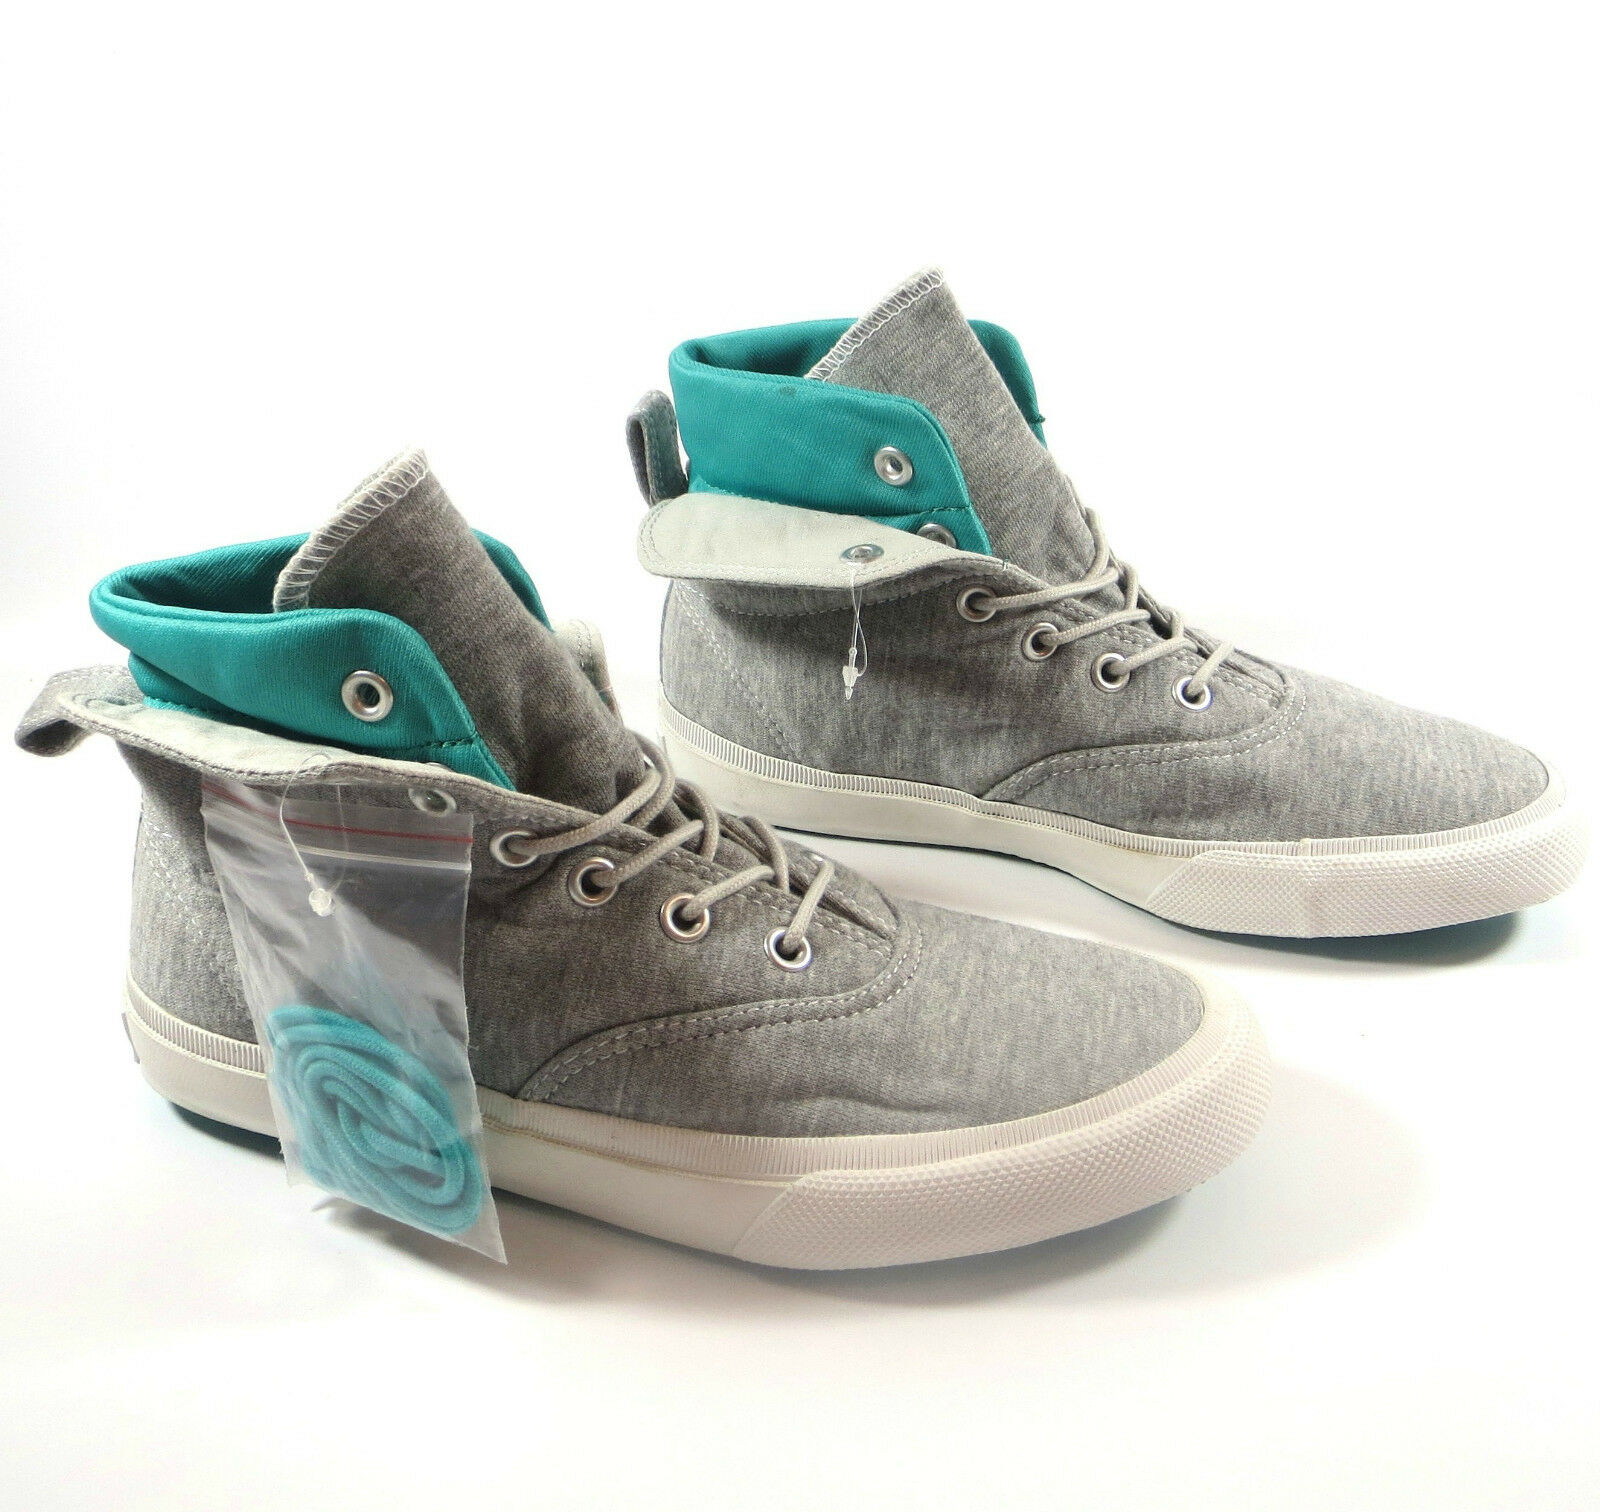 Men's CONVERSE Bll Star GREY GREEN SKID GRIP MID HI TOP Trainers Boots UK SIZE 9